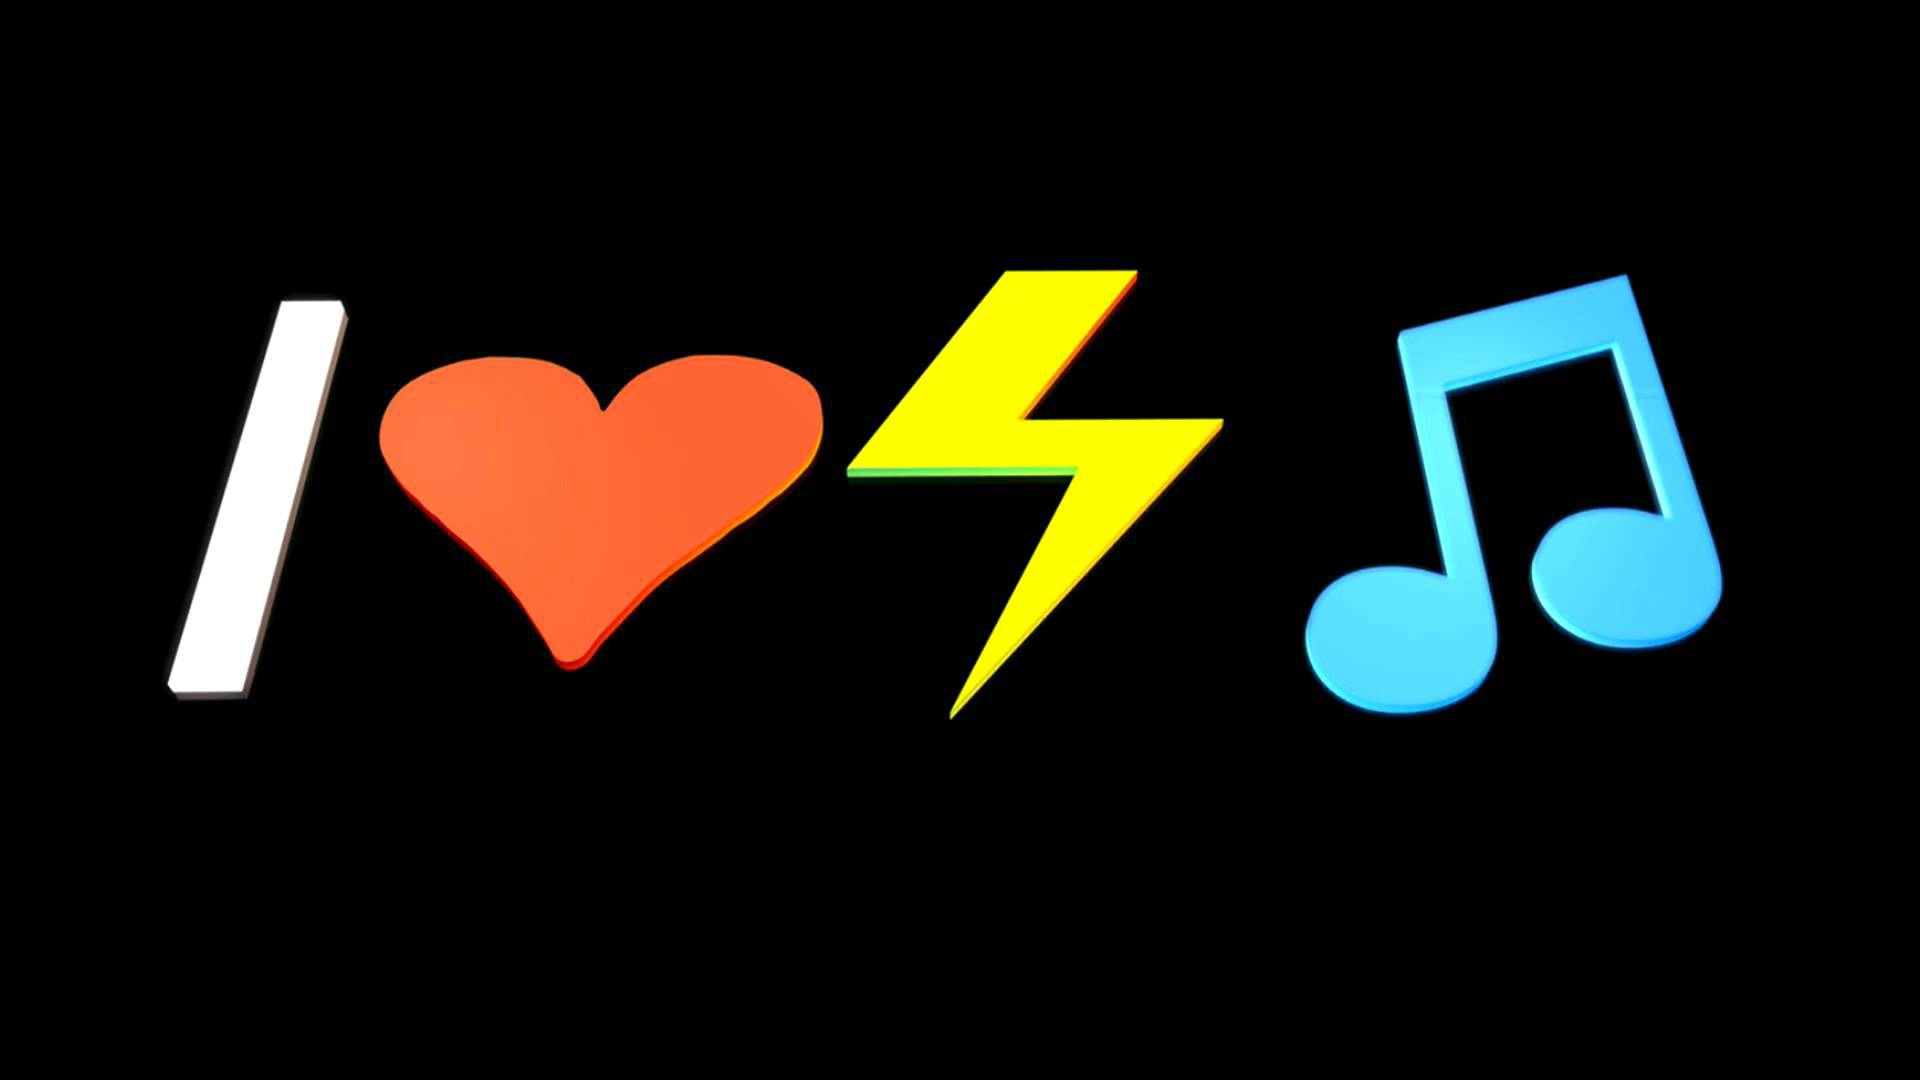 i love music wallpapers - wallpaper cave